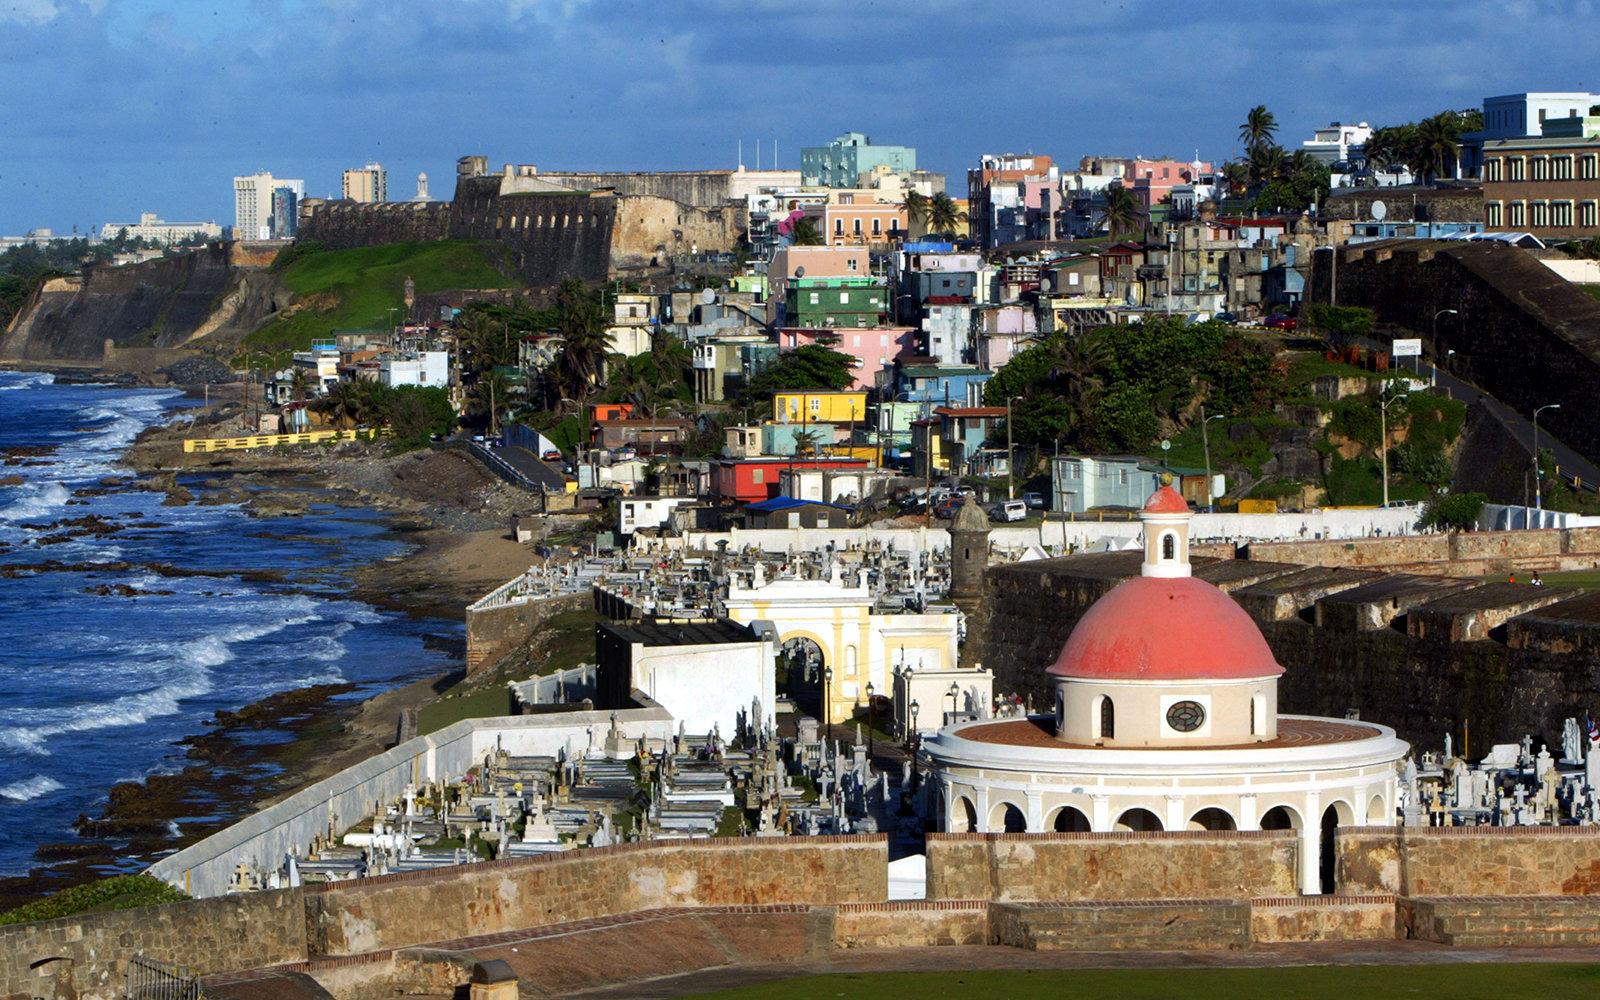 SAN JUAN, PUERTO RICO- APRIL 25: The cupola of San Juan Cemetary as well as colorful homes sit next to the ocean April 25, 2004 in Old San Juan, the original capital city of San Juan, Puerto Rico. The old city is a historic district of seven square blocks